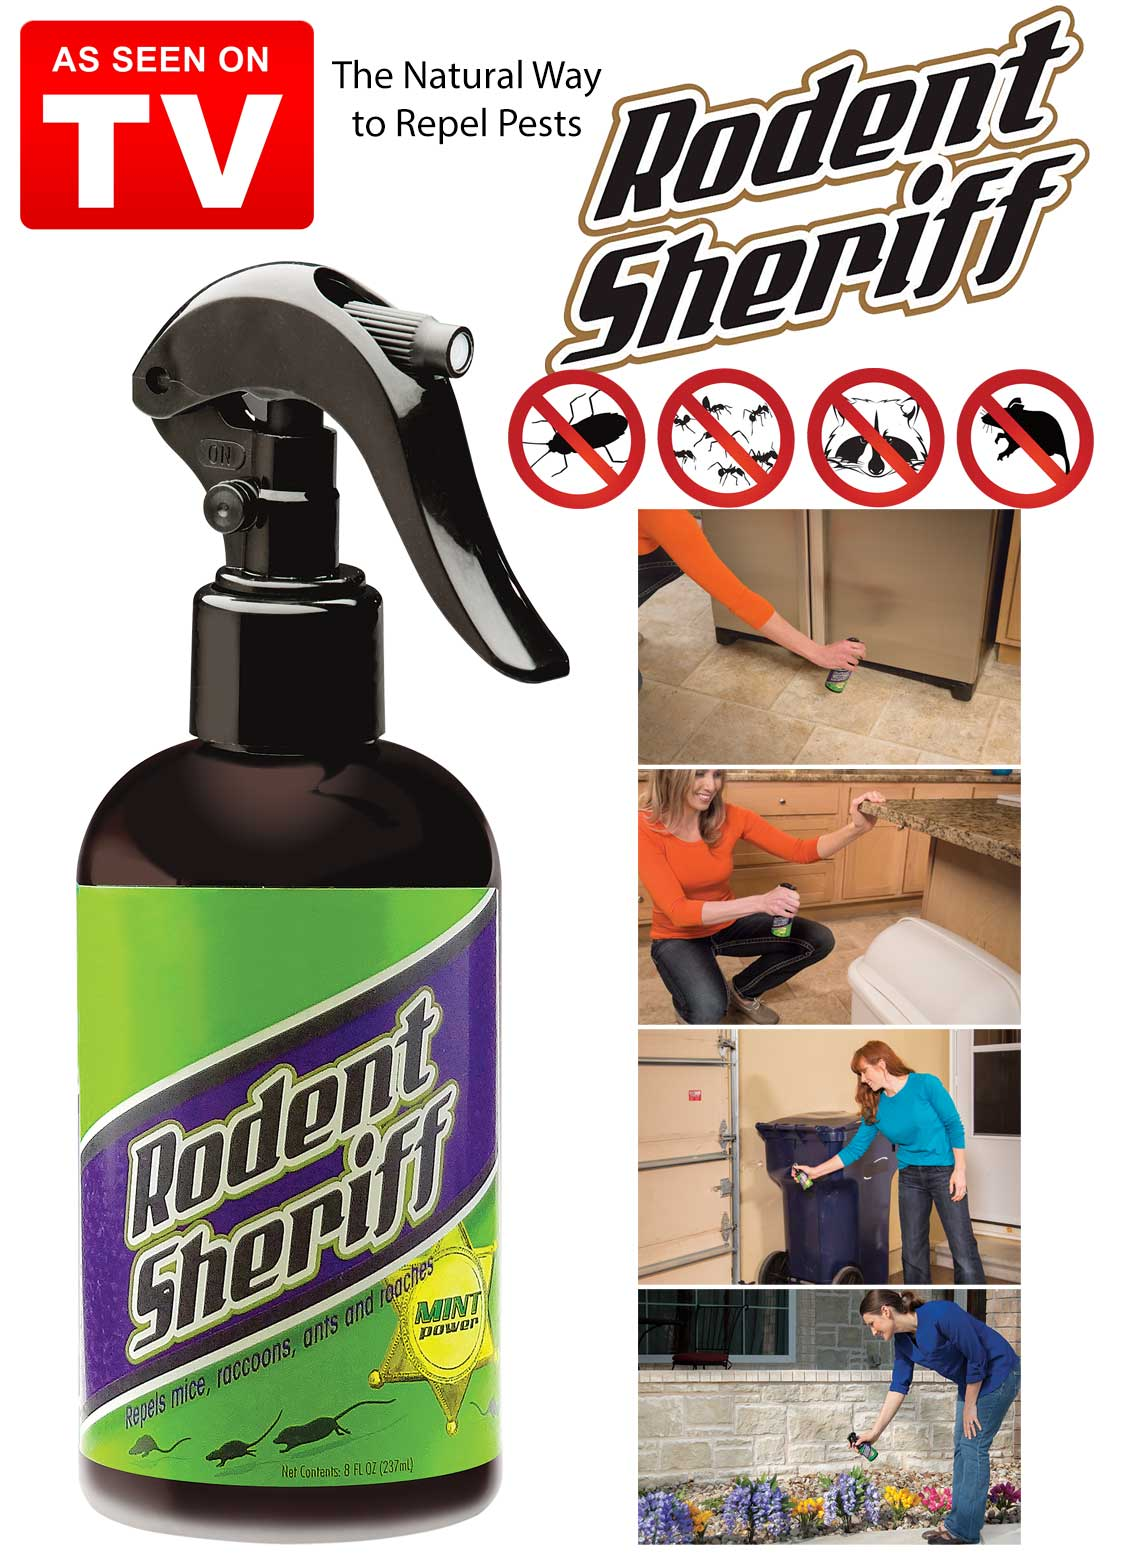 Rodent Sheriff Pest Control Spray As Seen On Tv